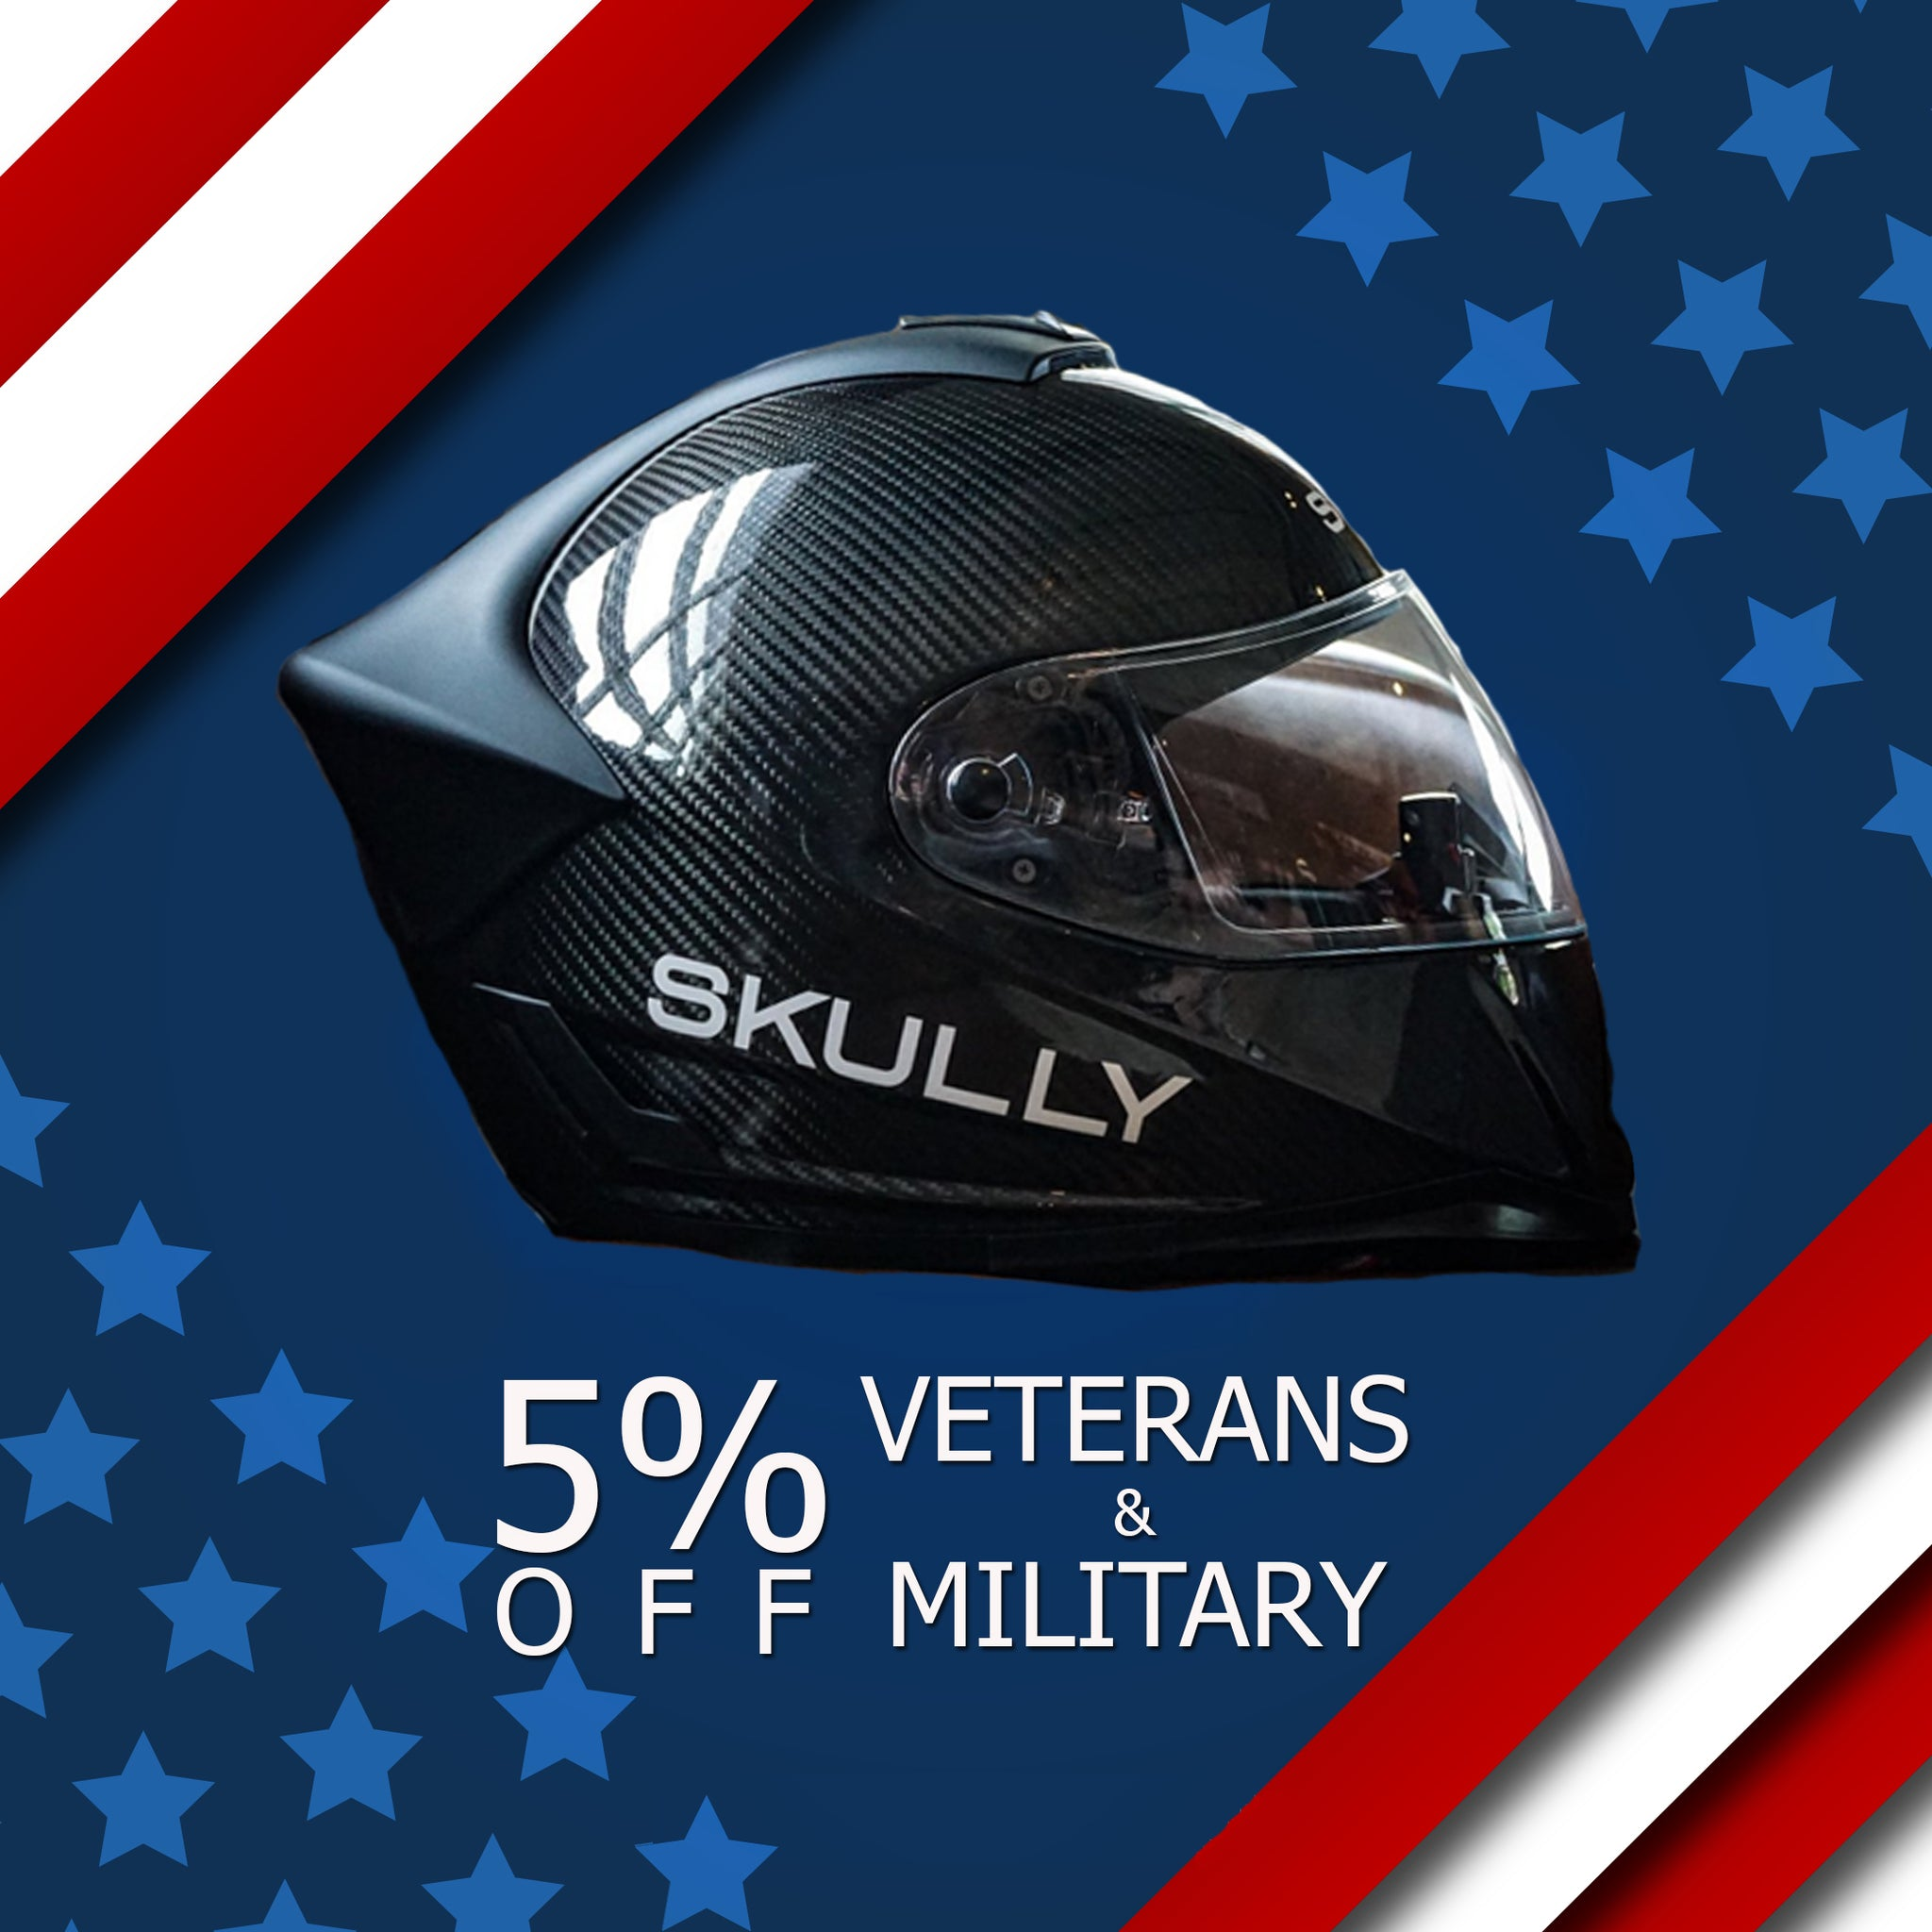 5% Discount for Veterans and Military